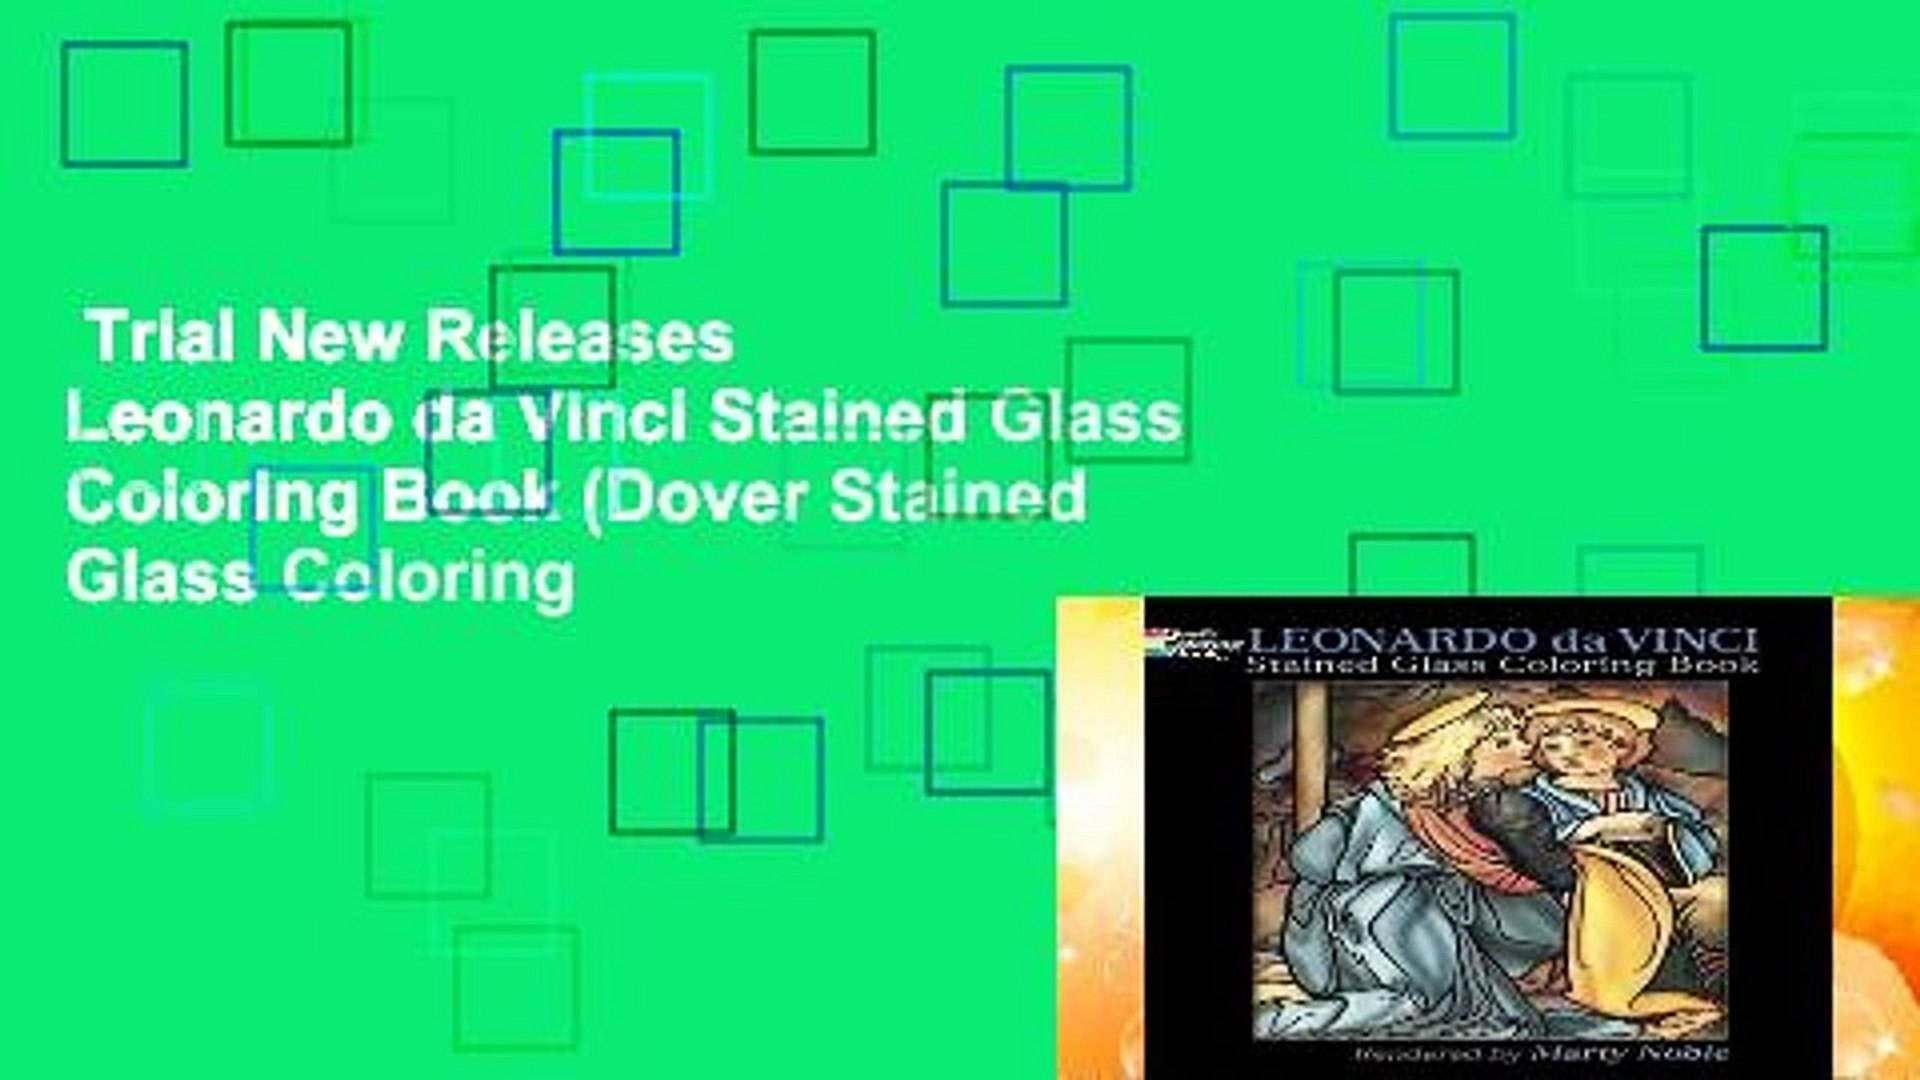 Trial New Releases  Leonardo da Vinci Stained Glass Coloring Book (Dover Stained Glass Coloring